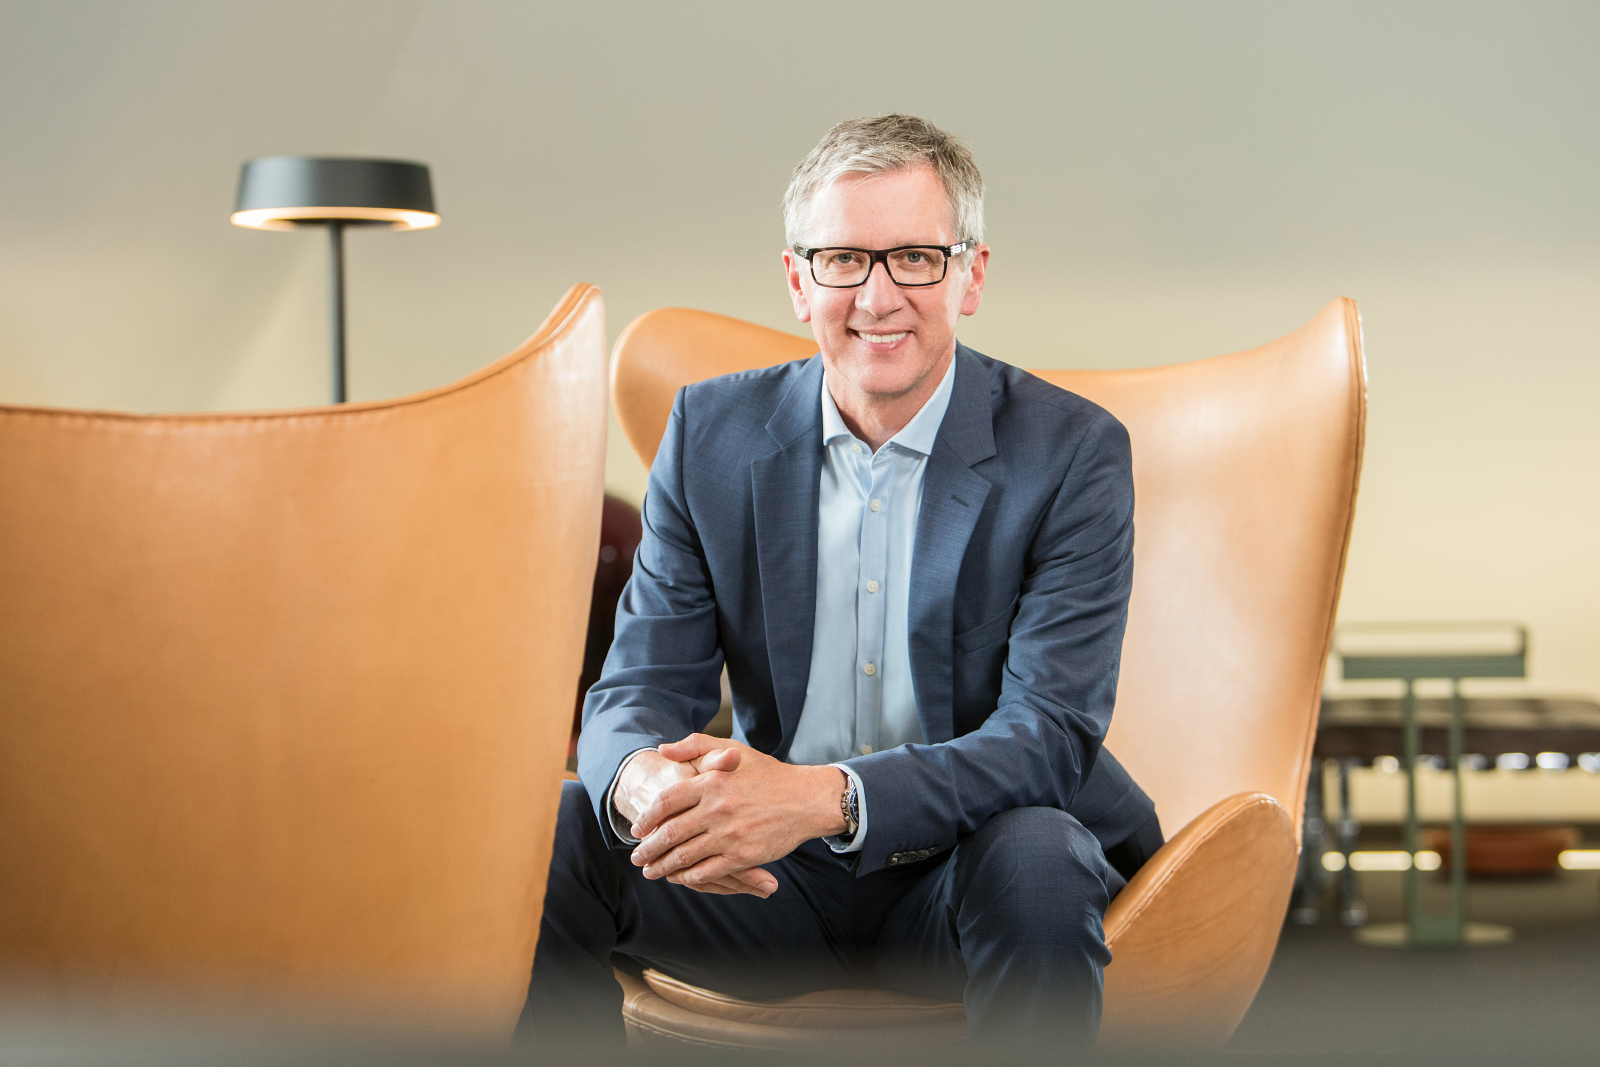 01 schneider executives consulting firma businessportraits - Consulting Fotografie im Design Office